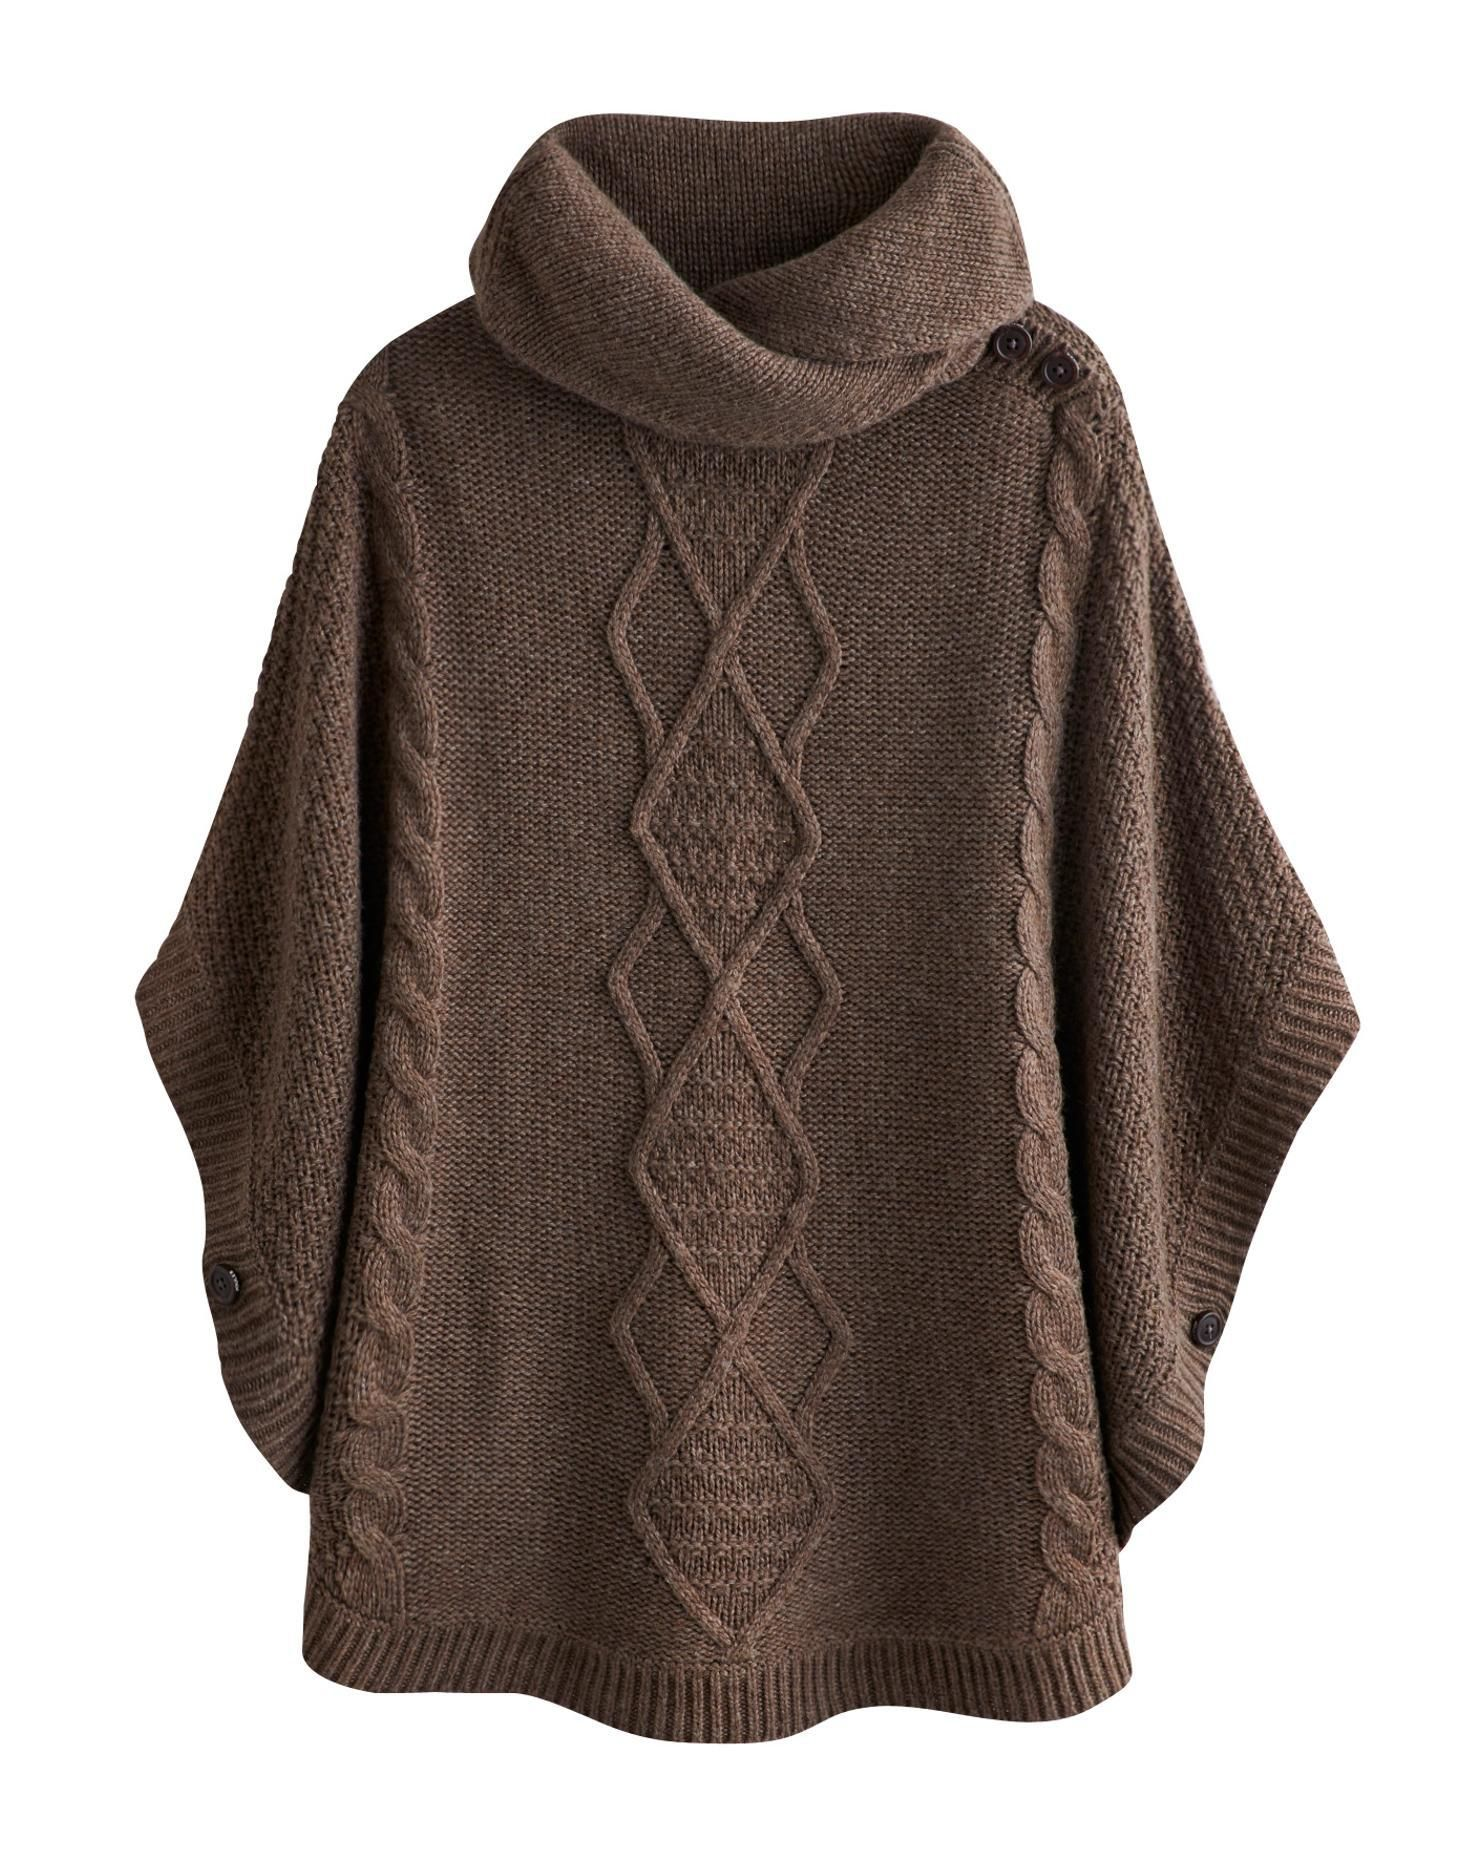 Brown Poncho Sweater Her Sweater